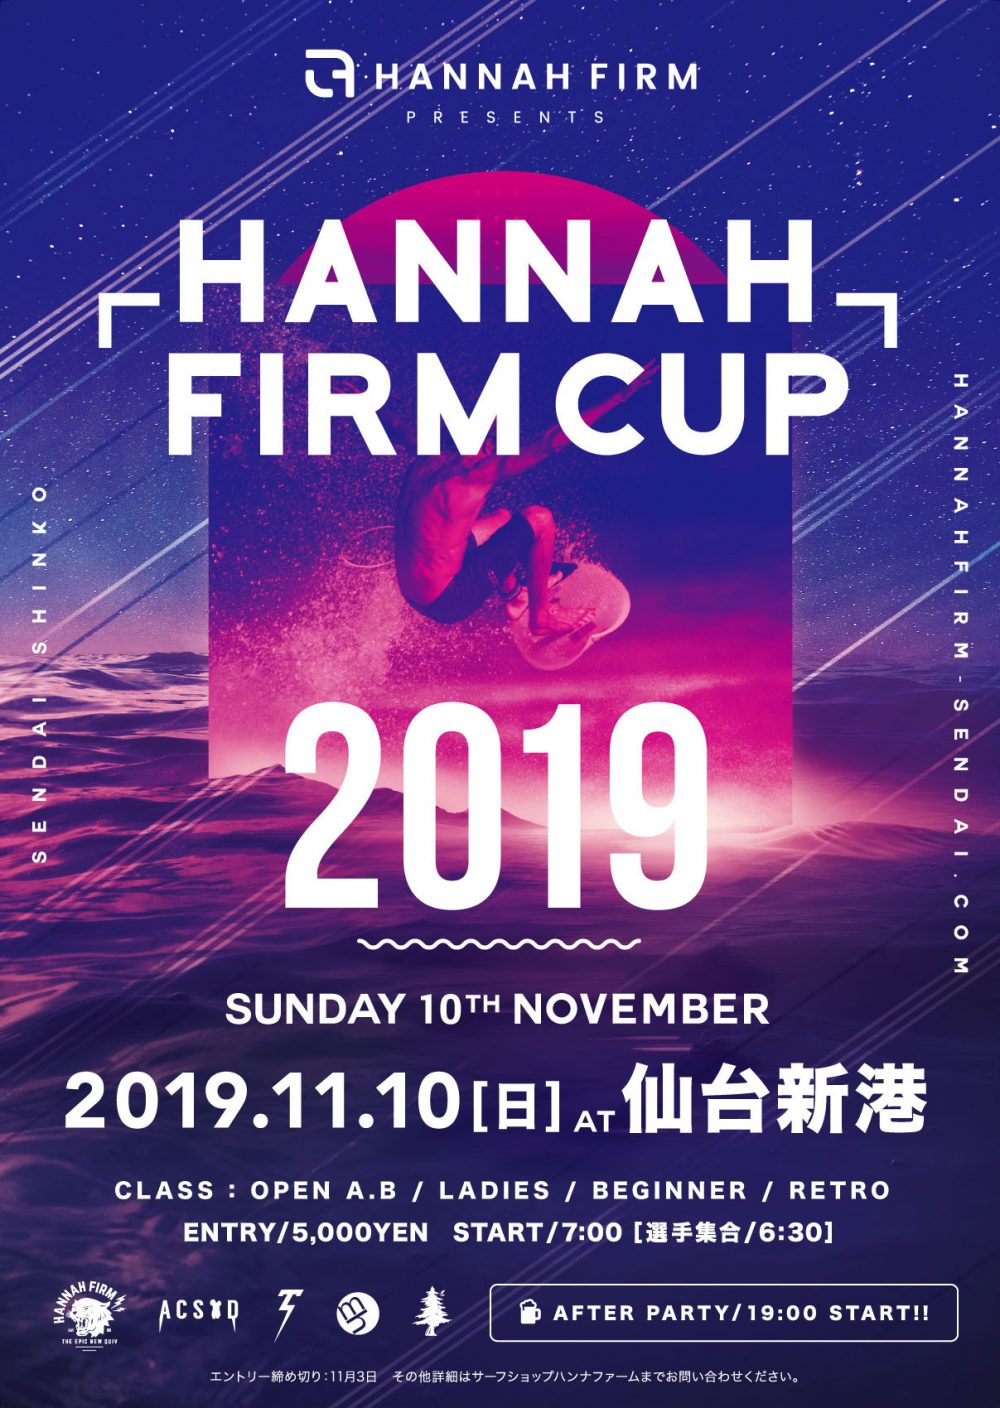 HANNAH FIRM CUP 2019 エントリー受付スタート